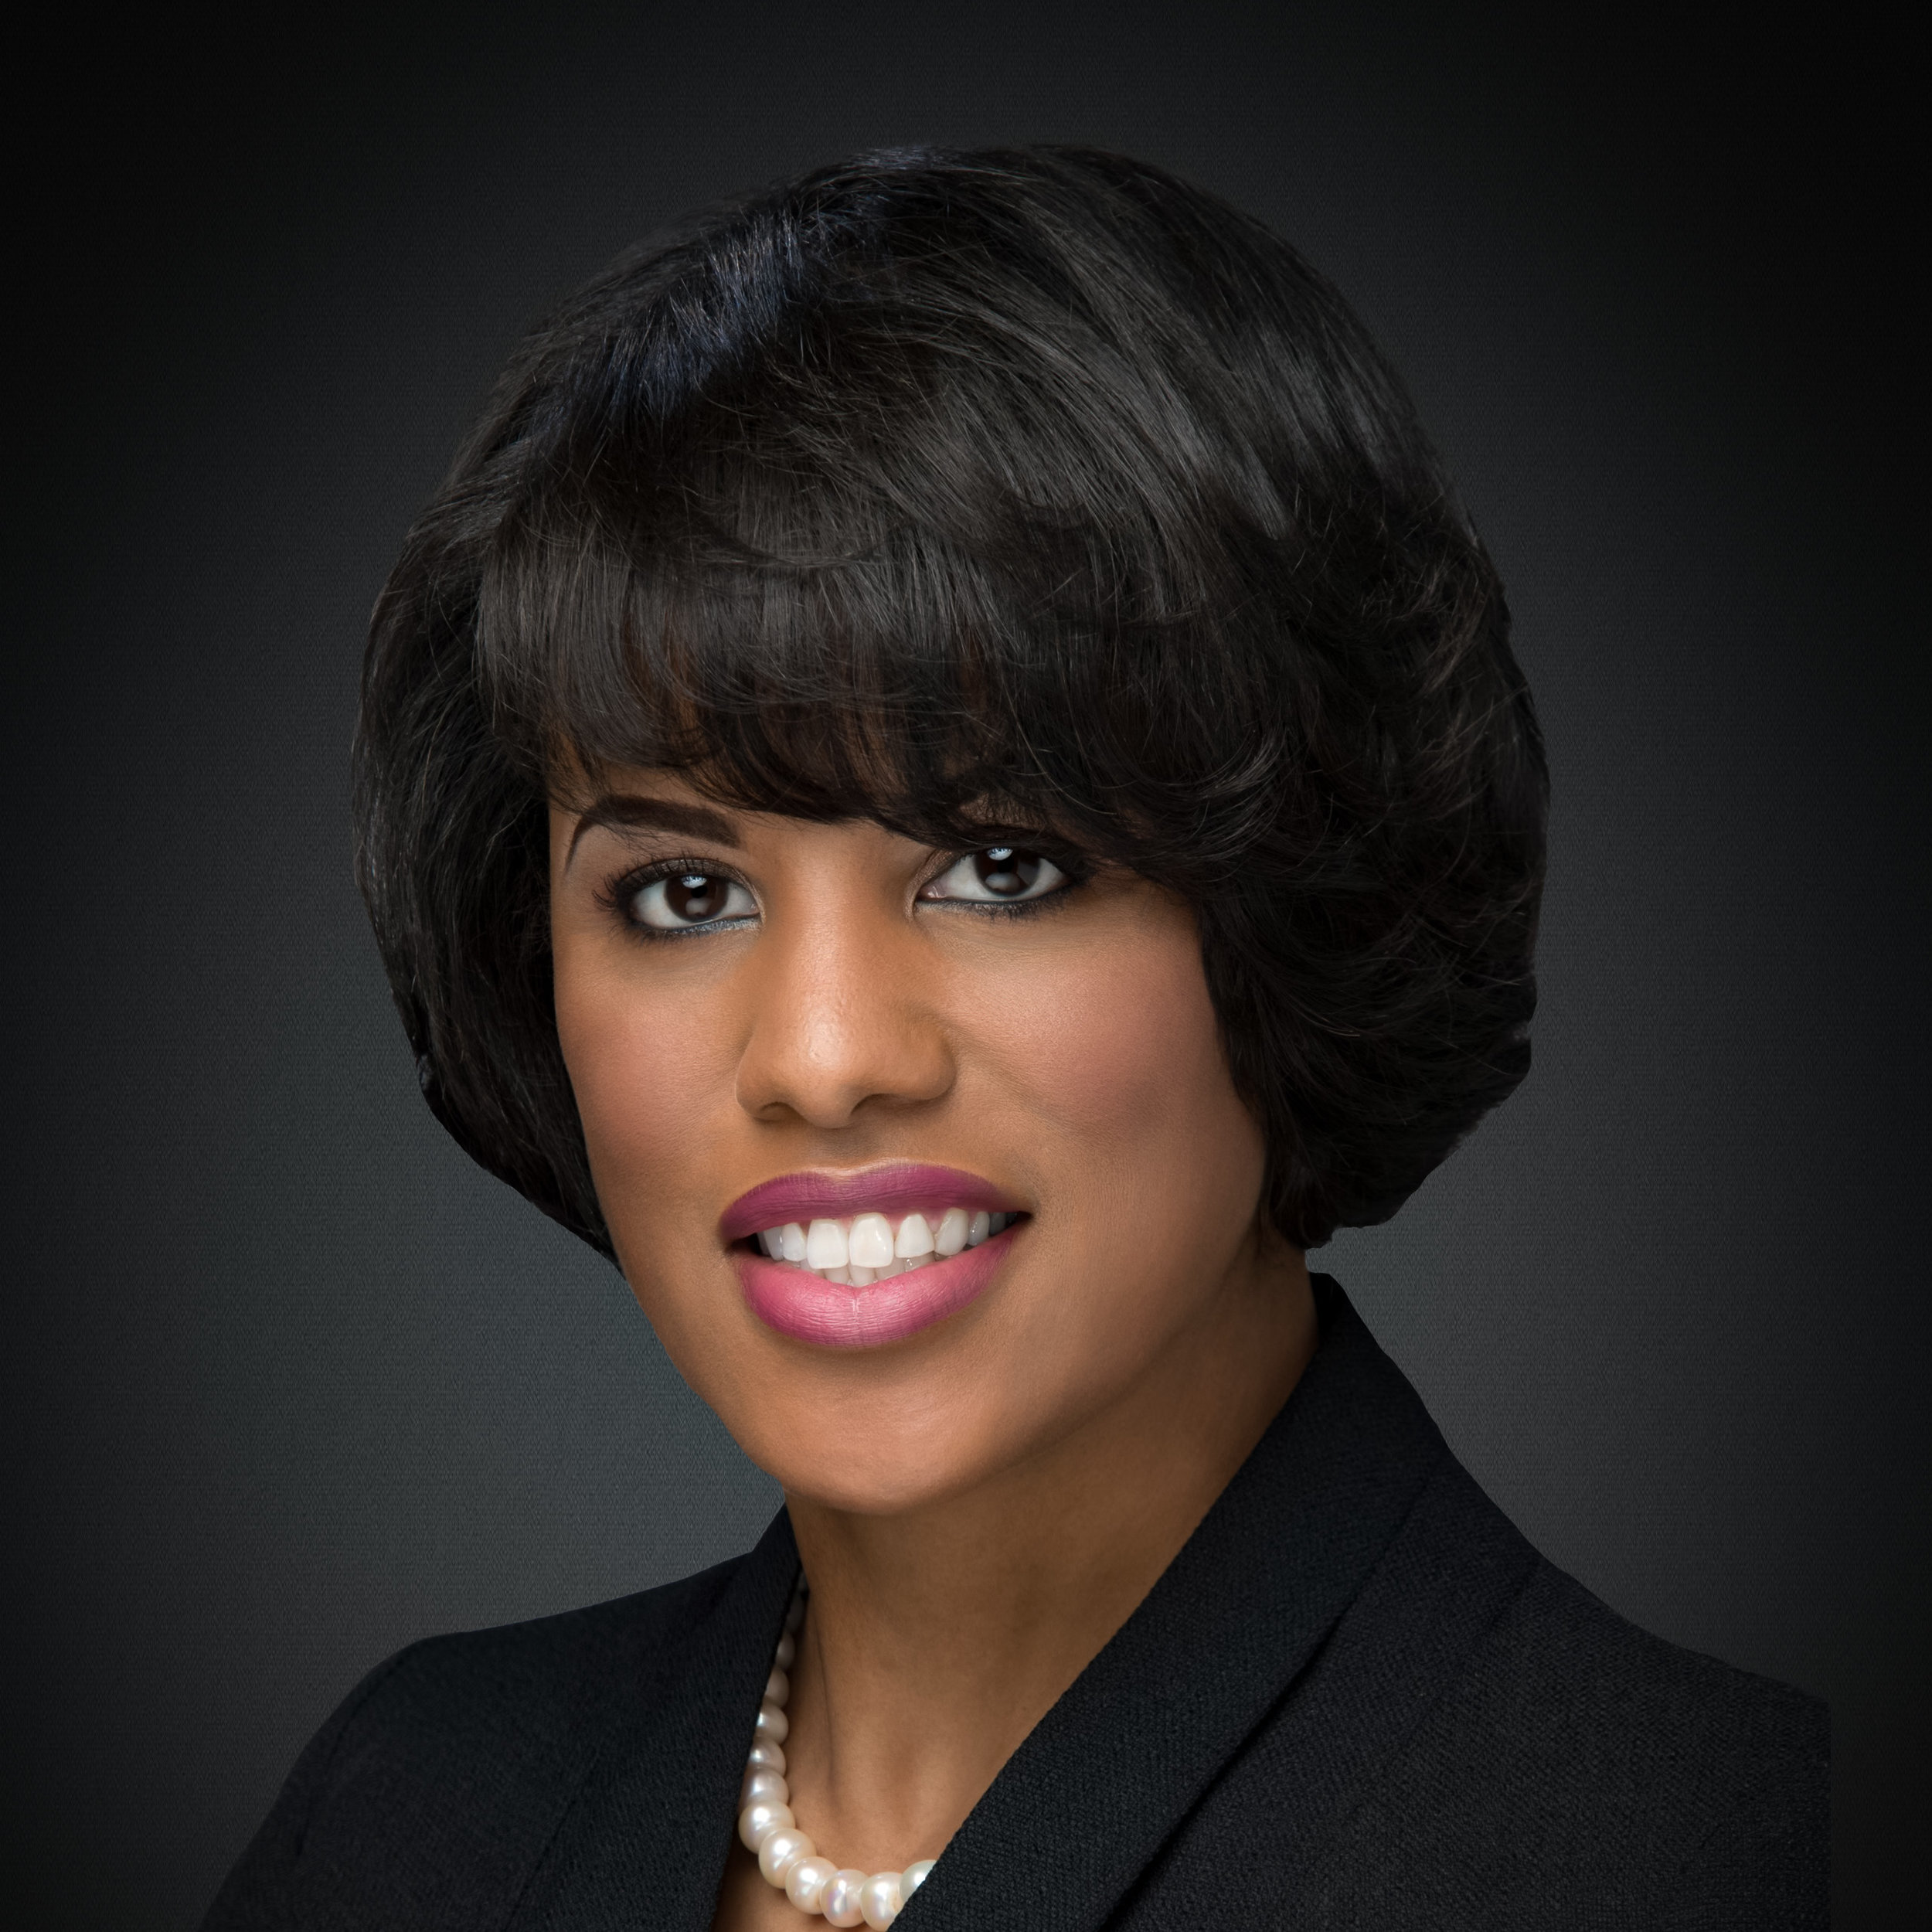 The Hon. Stephanie Rawlings-Blake Council of Mayors